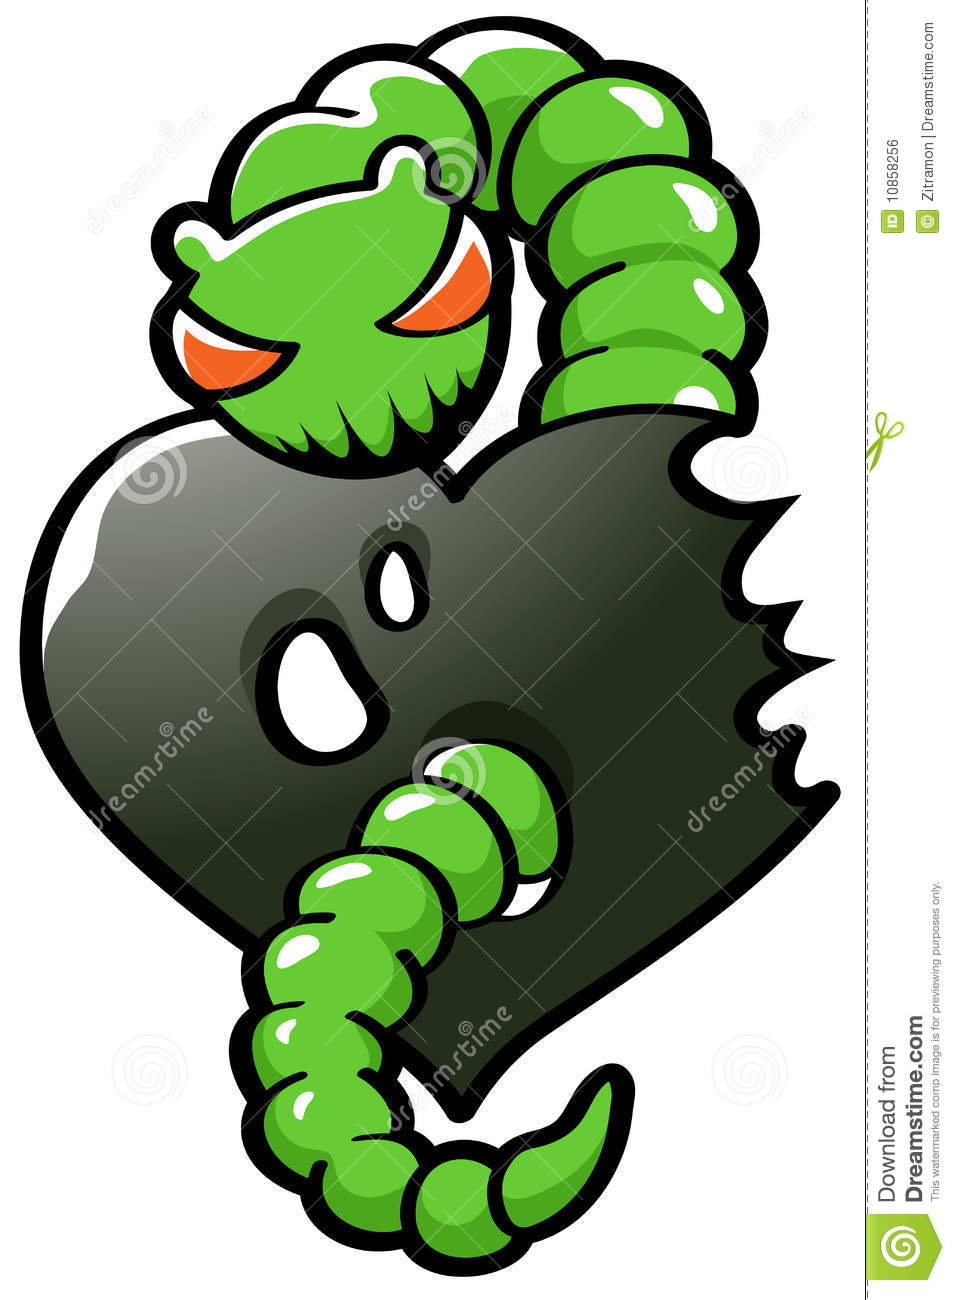 Green Envy Worm Royalty Free Stock Image Image 10858256